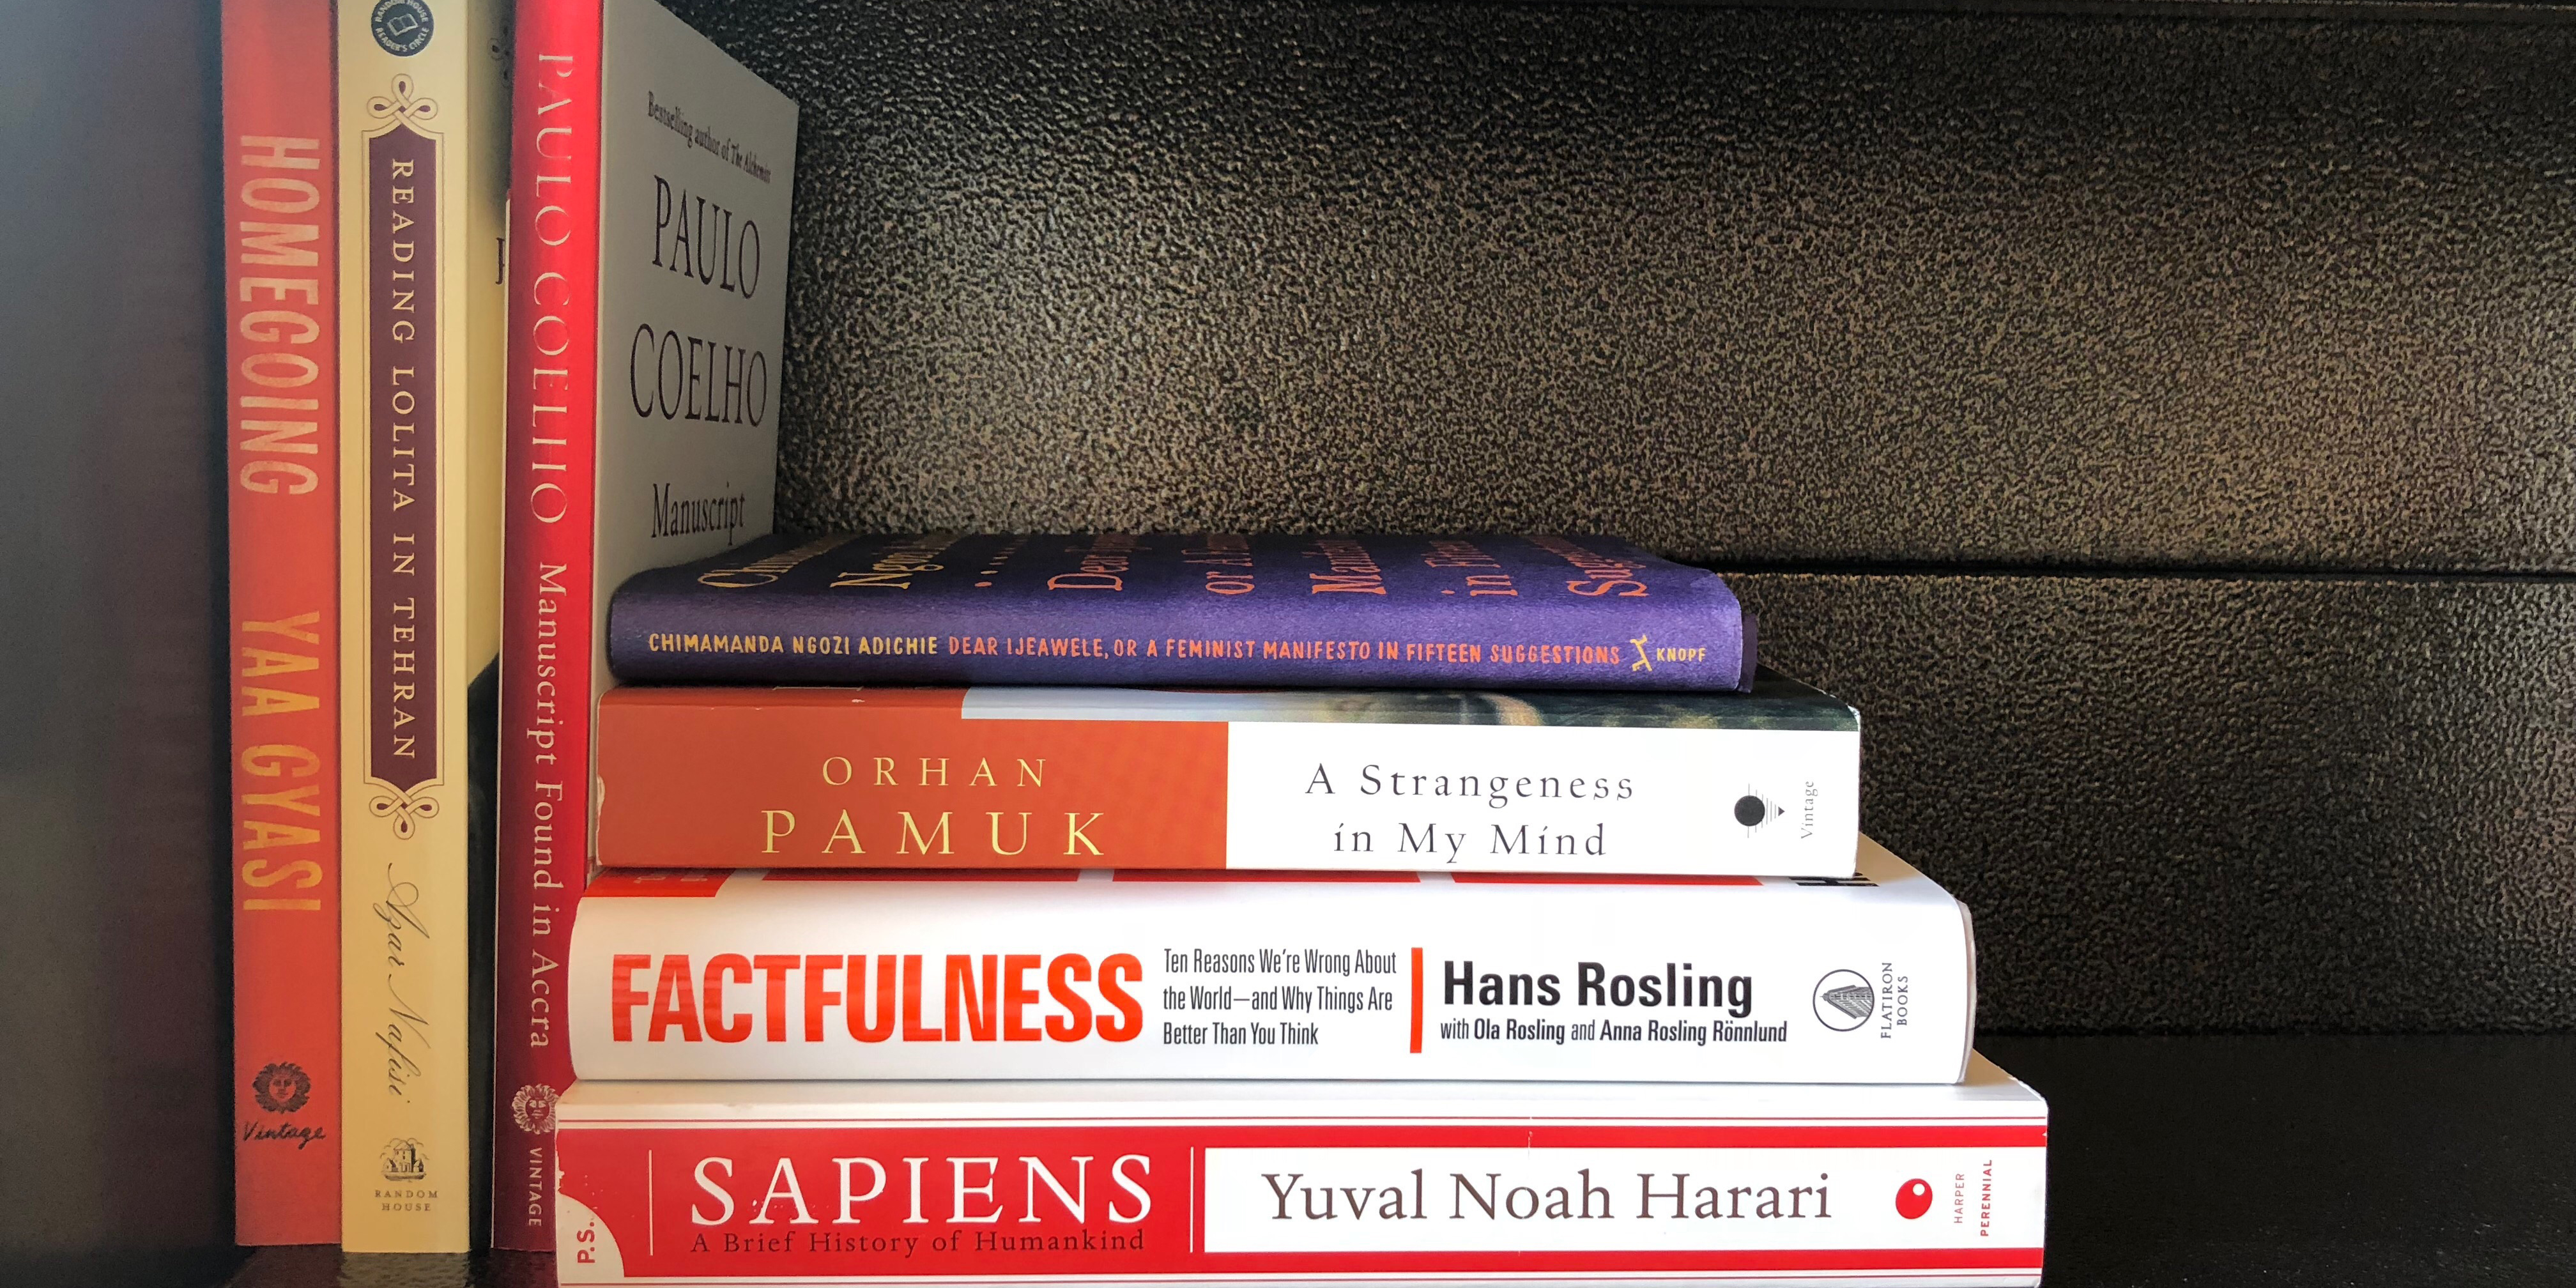 10 books you need to read that will change your world view